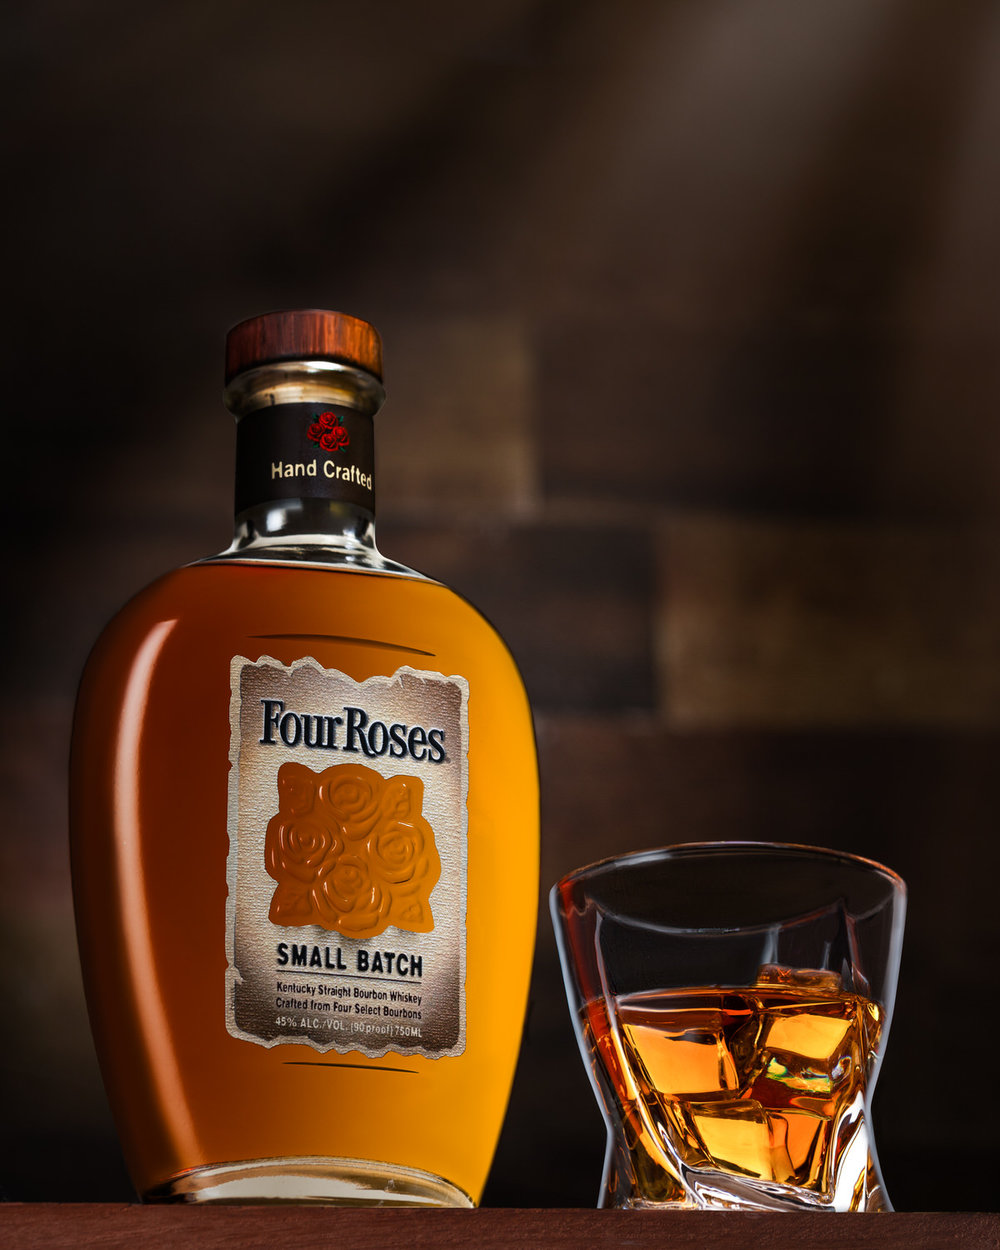 Nashville Product photography of Four Roses Bourbon